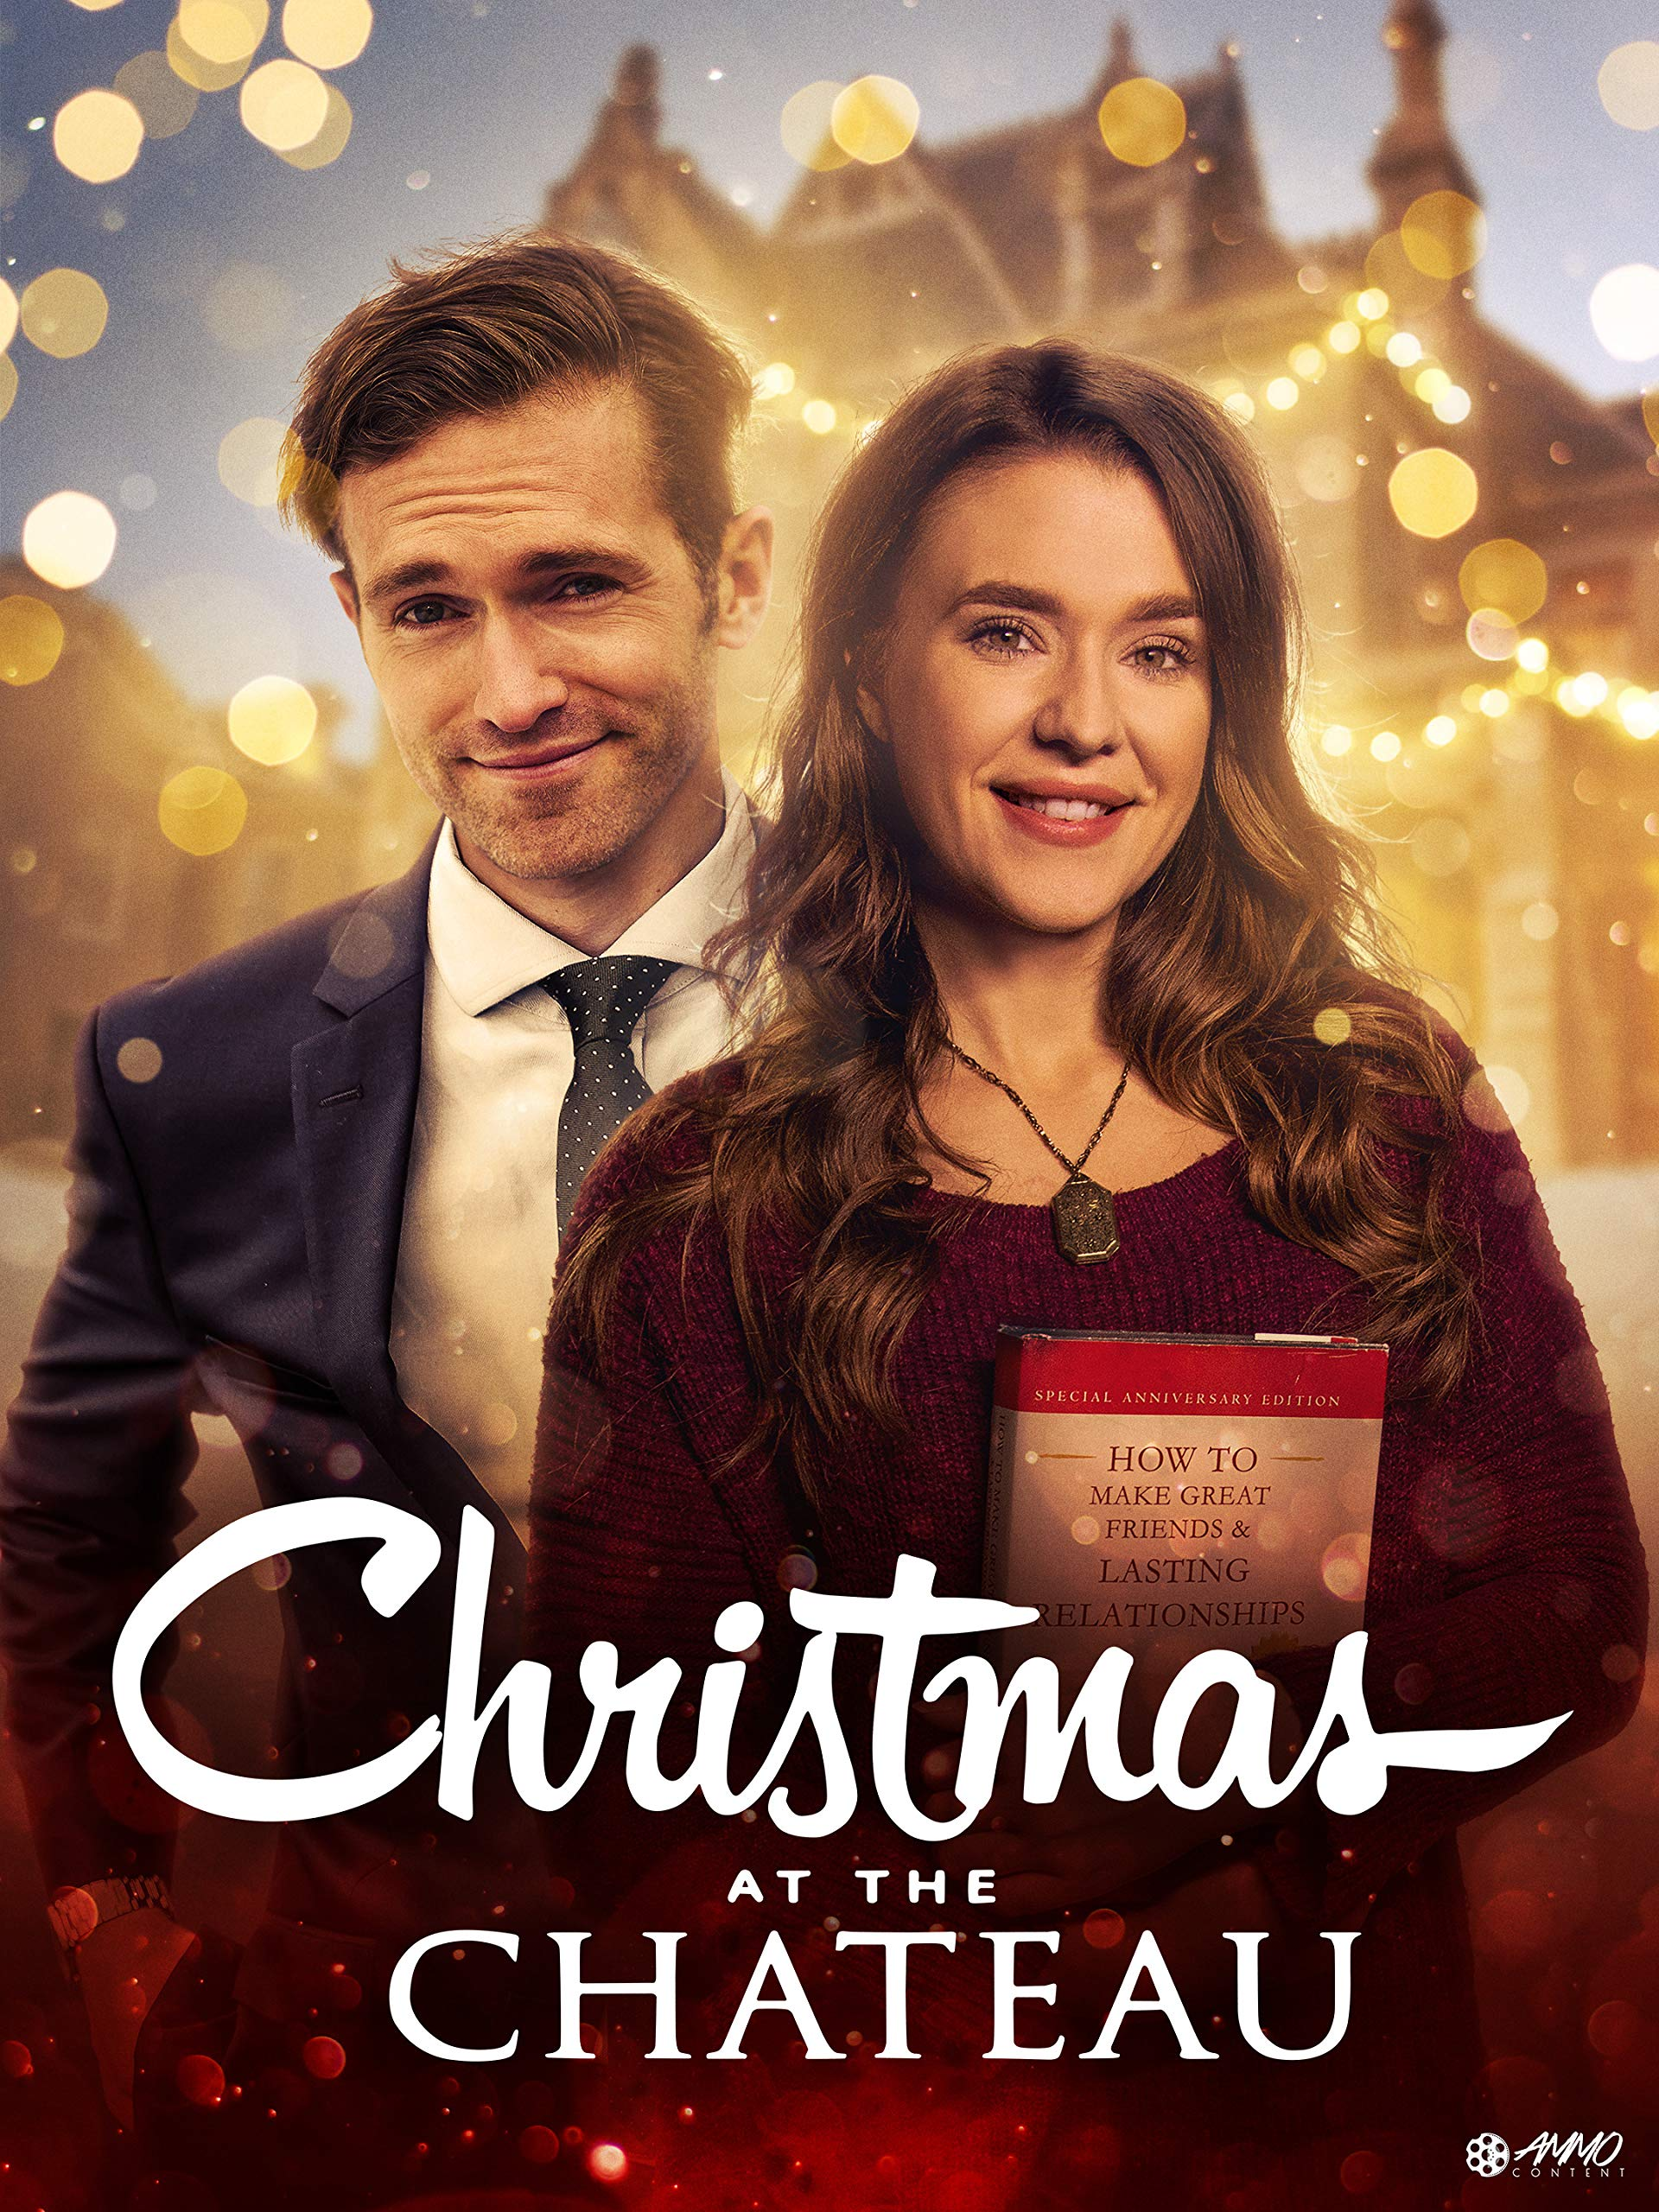 Amazon.com: Watch Christmas at the Chateau | Prime Video